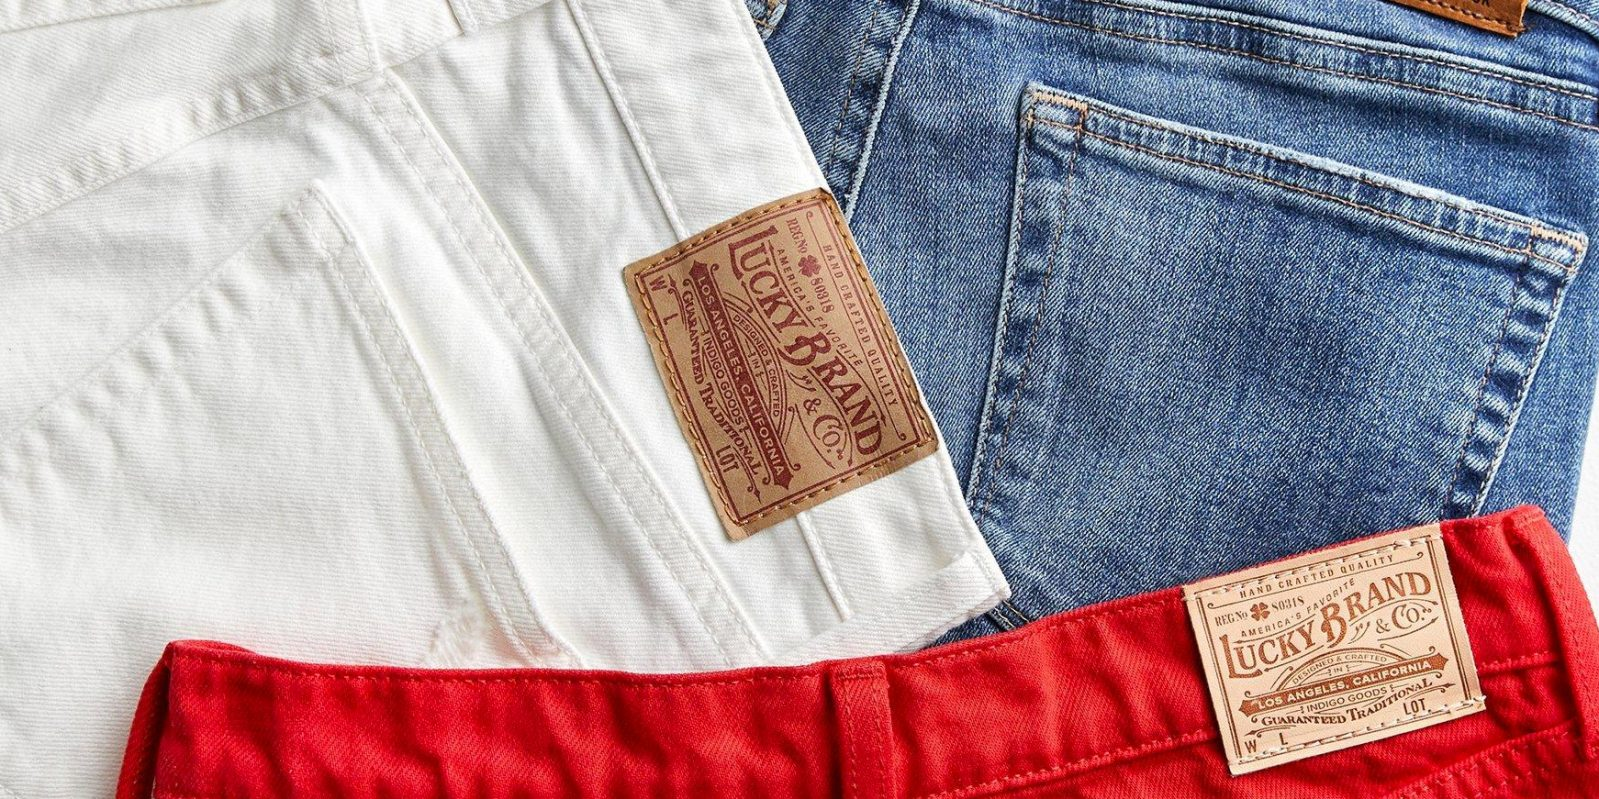 Lucky Brand End of Season Sale offers up to 75% off clearance styles from $12